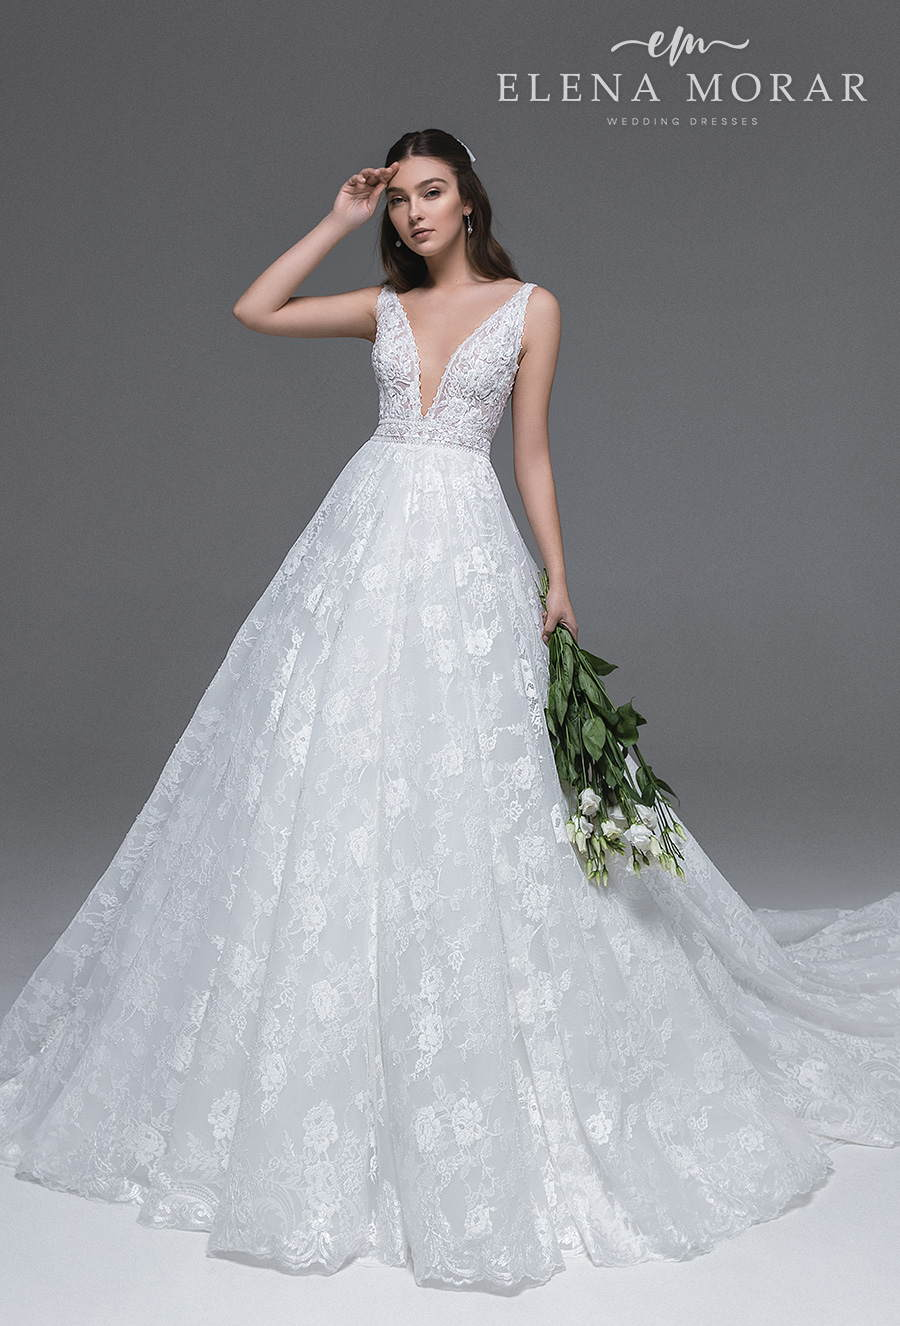 elena morar 2021 desert rose bridal sleeveless with strap deep v neck full embellishment romantic a line wedding dress v back chapel train (033) mv